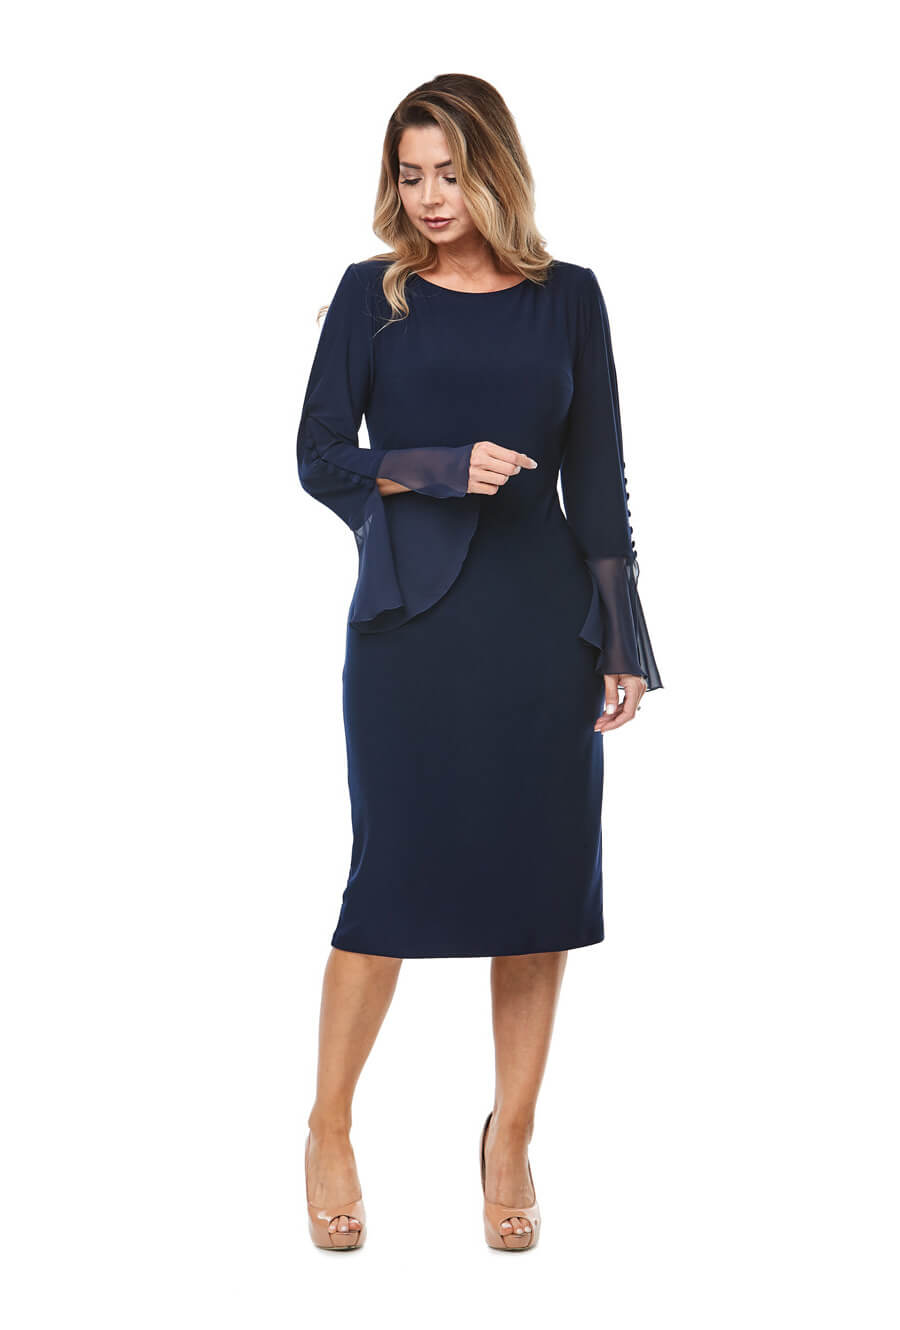 Stretch jersey cocktaildress with long bell sleeves & button detail